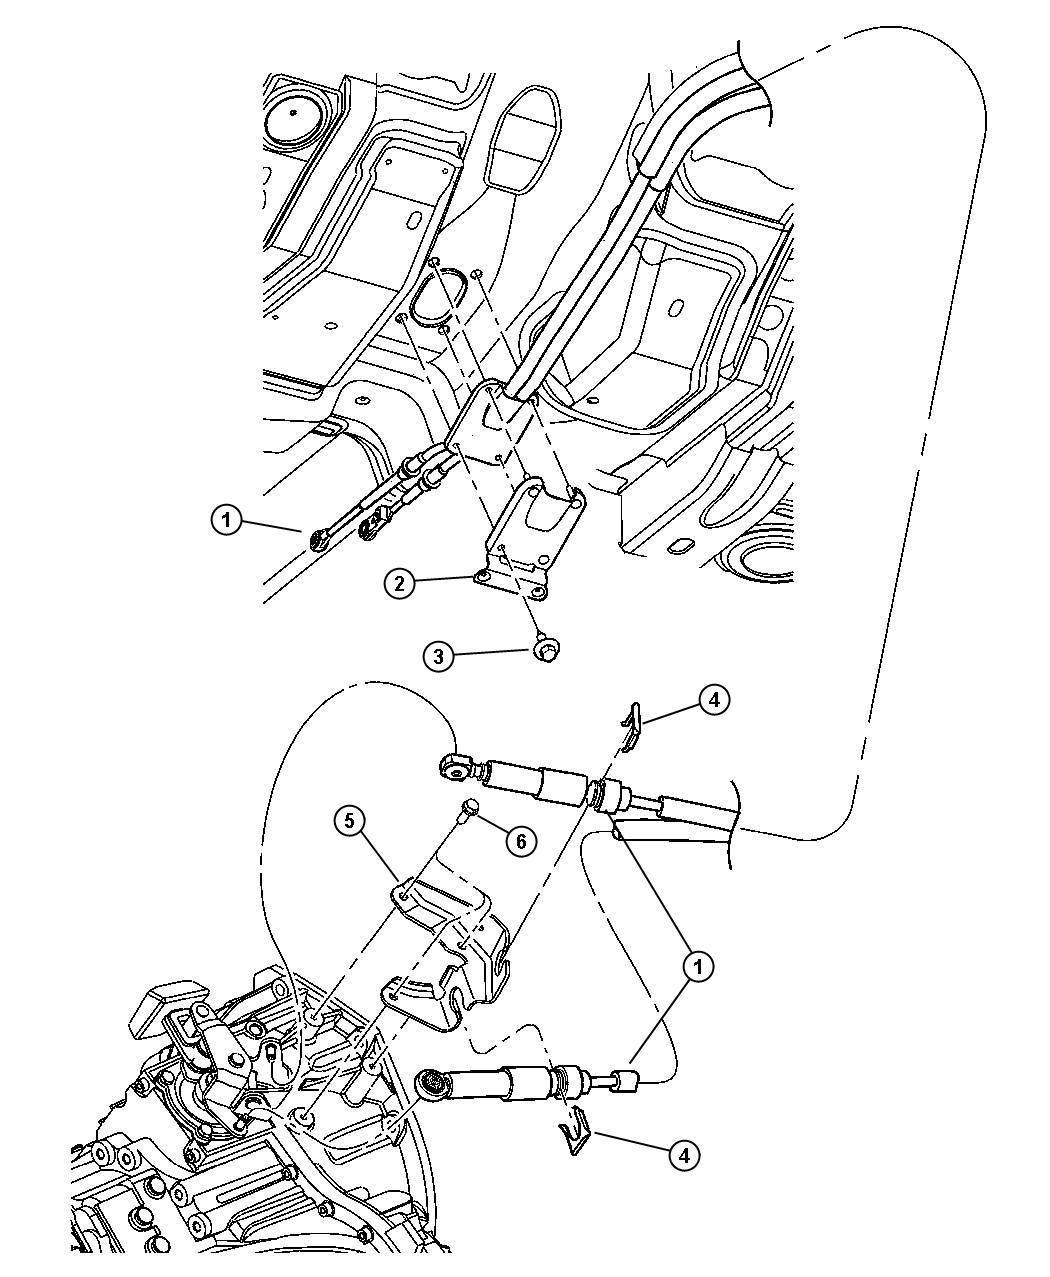 Service manual [Repair Shift Gear Cable For A 2004